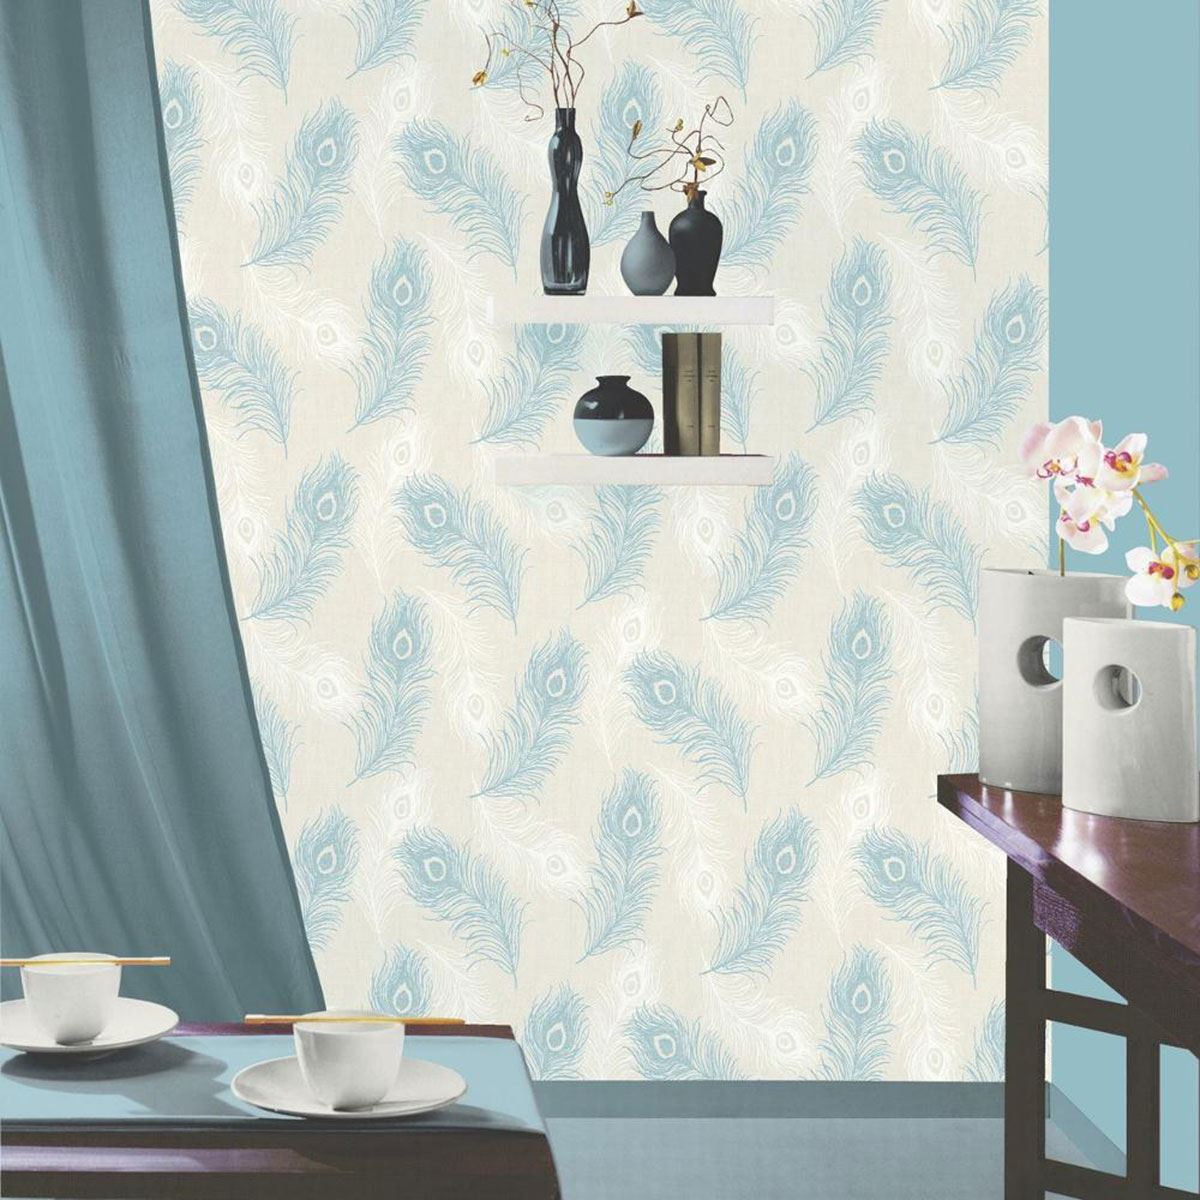 DEBONA VIOLA FEATHER WALLPAPER BLACK TAUPE TEAL FEATURE WALL DECOR EBay